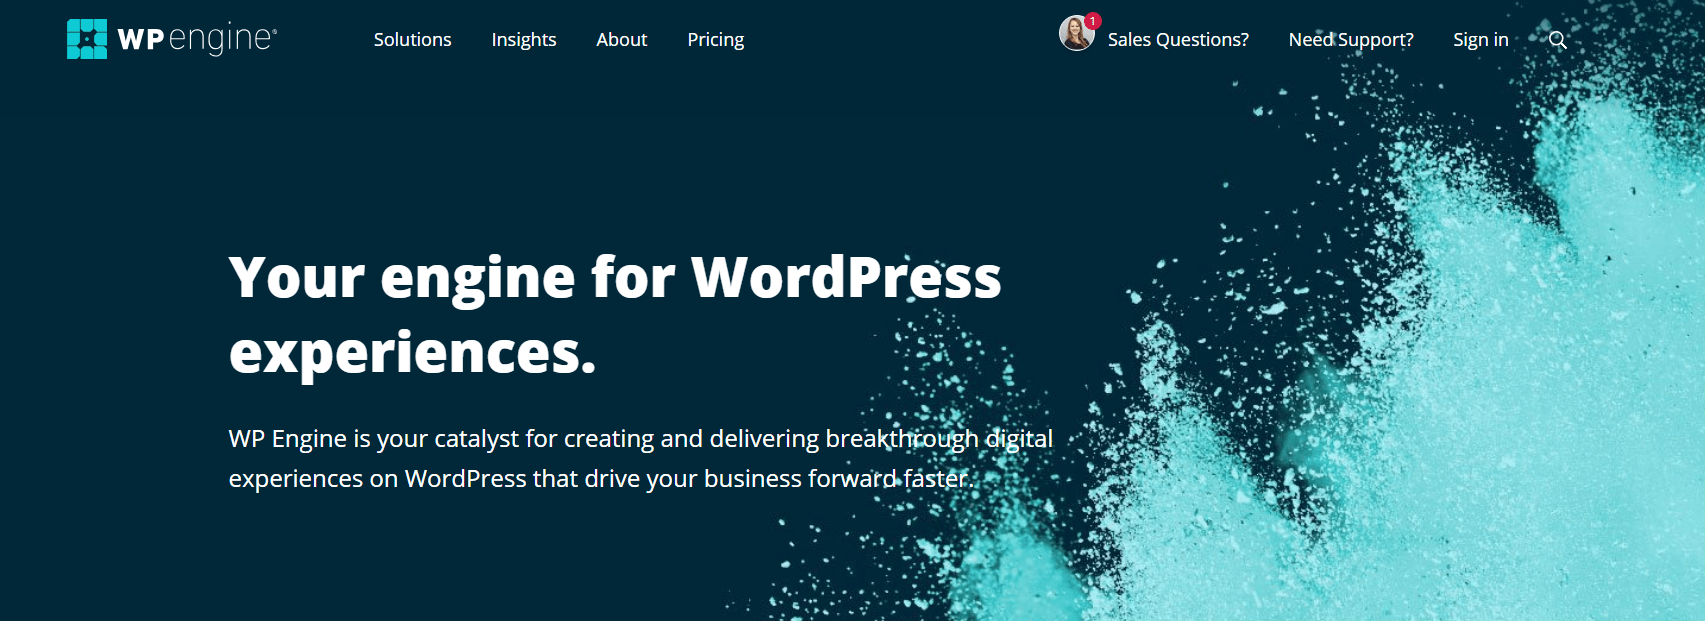 WP Engine WordPress Hosting  Price Deals June 2020